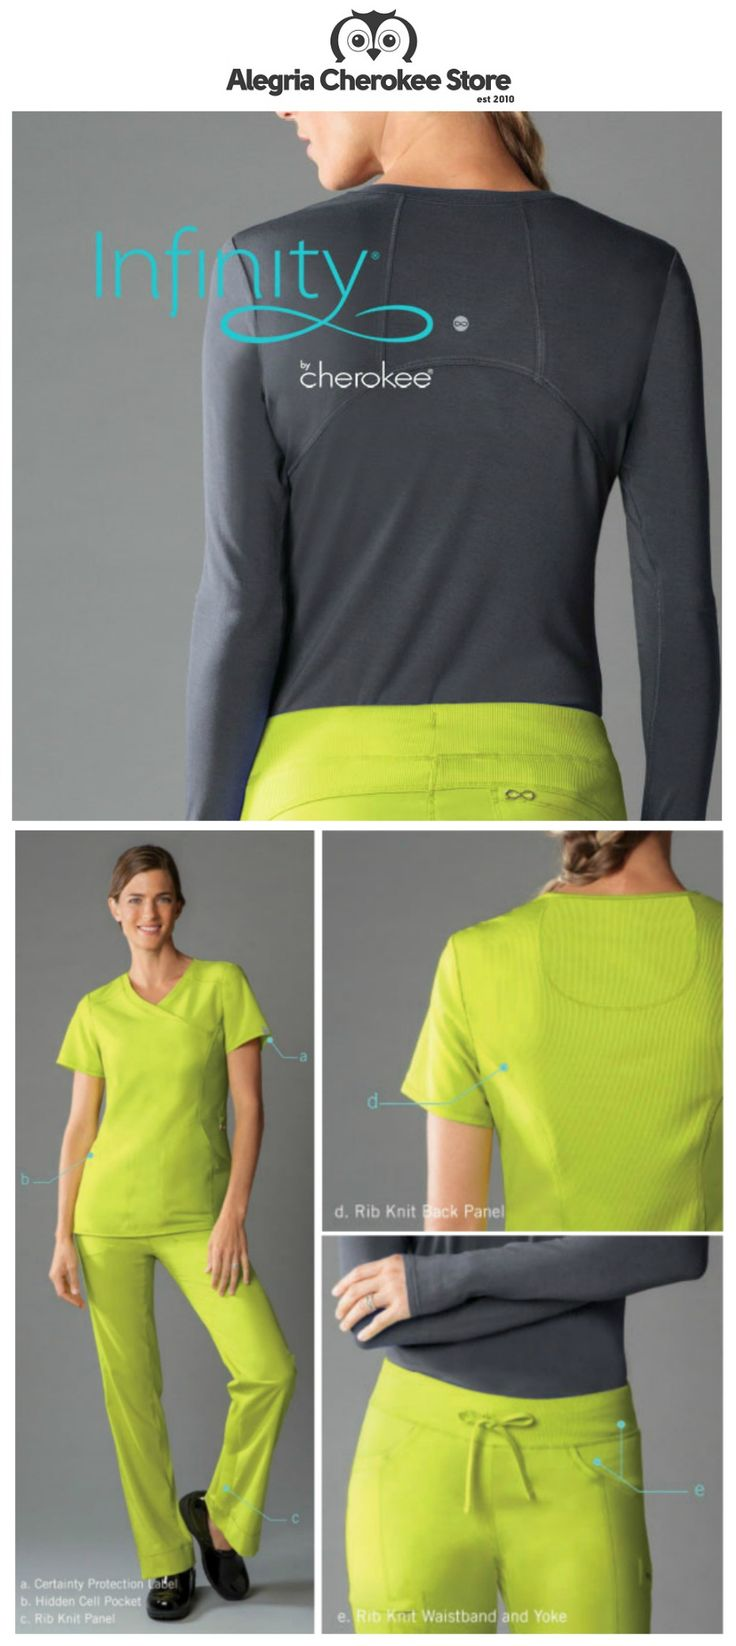 It's finally here!  The new Infinity by Cherokee collection: an athletic-inspired lifestyle collection for scrubs-wearing professionals.  Designed for fit and performance, Infinity's modern styling and innovative designs offer fit-to-flatter detailing.  Also features Certainty fabric technology, which reduces bacteria on the uniform, providing intelligent freshness and peace of mind.   Alegria Cherokee Store